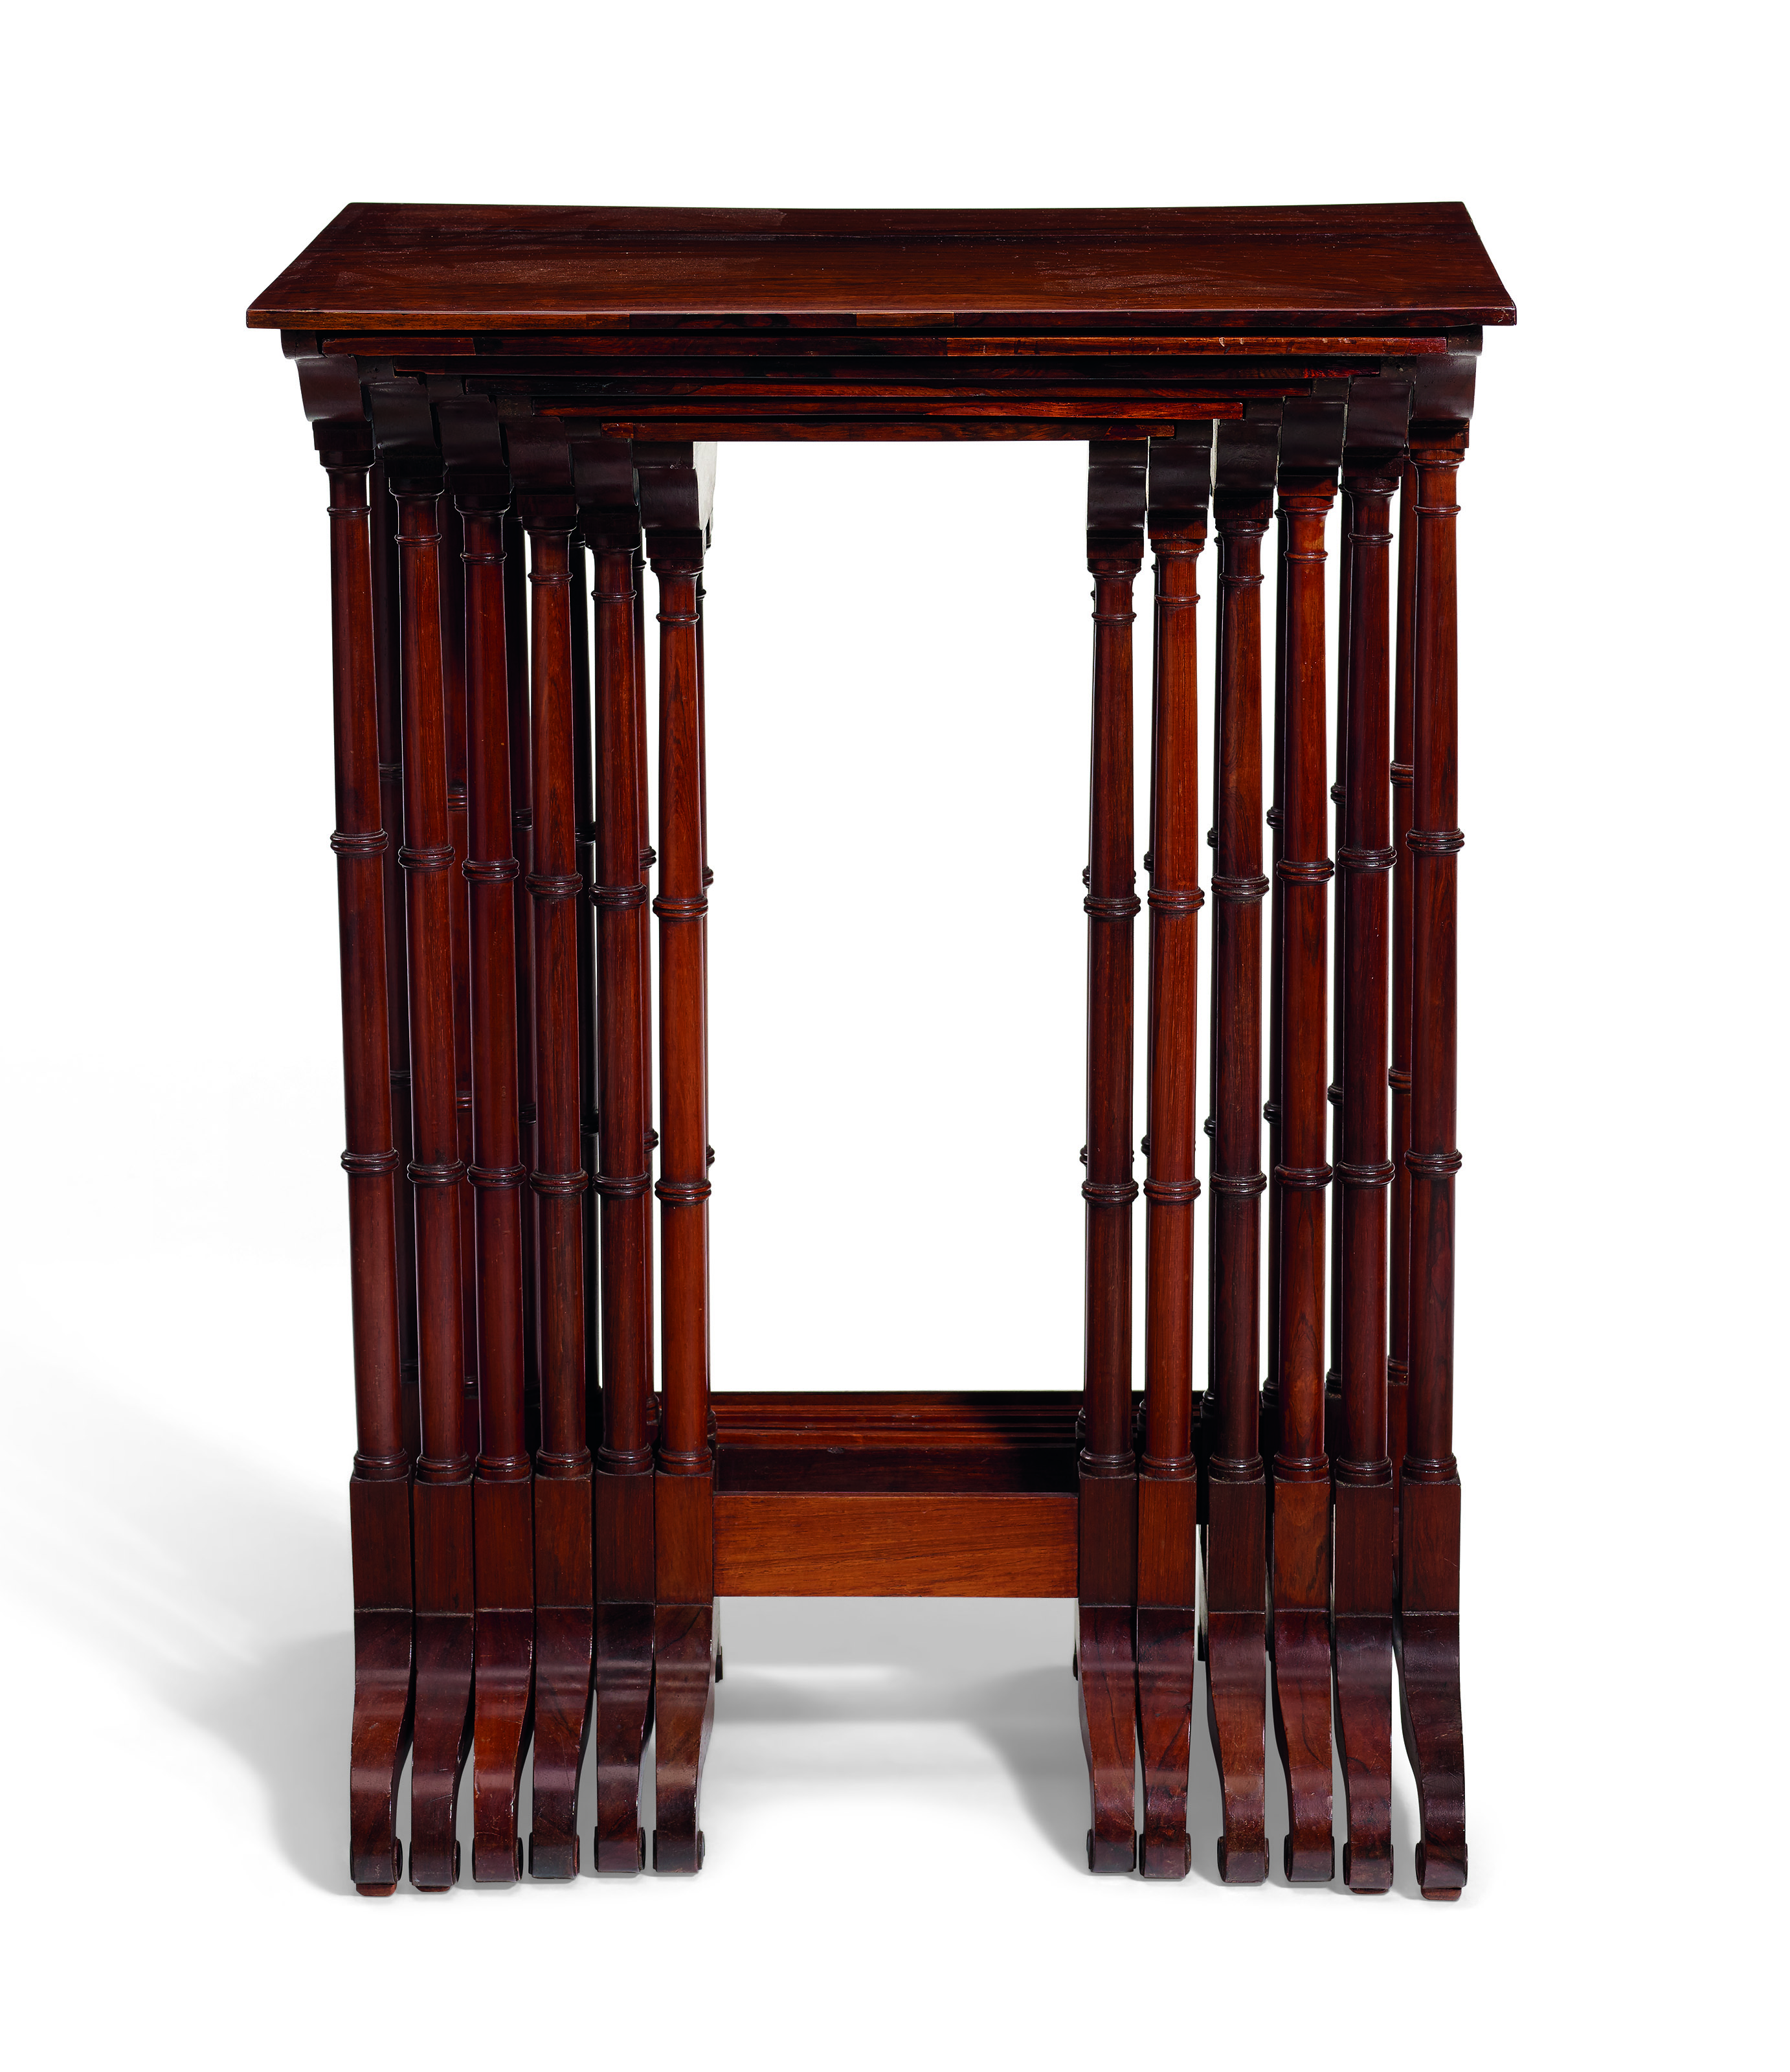 THE JOHN L. MANNING SET OF SIX CLASSICAL ROSEWOOD NESTING TABLES